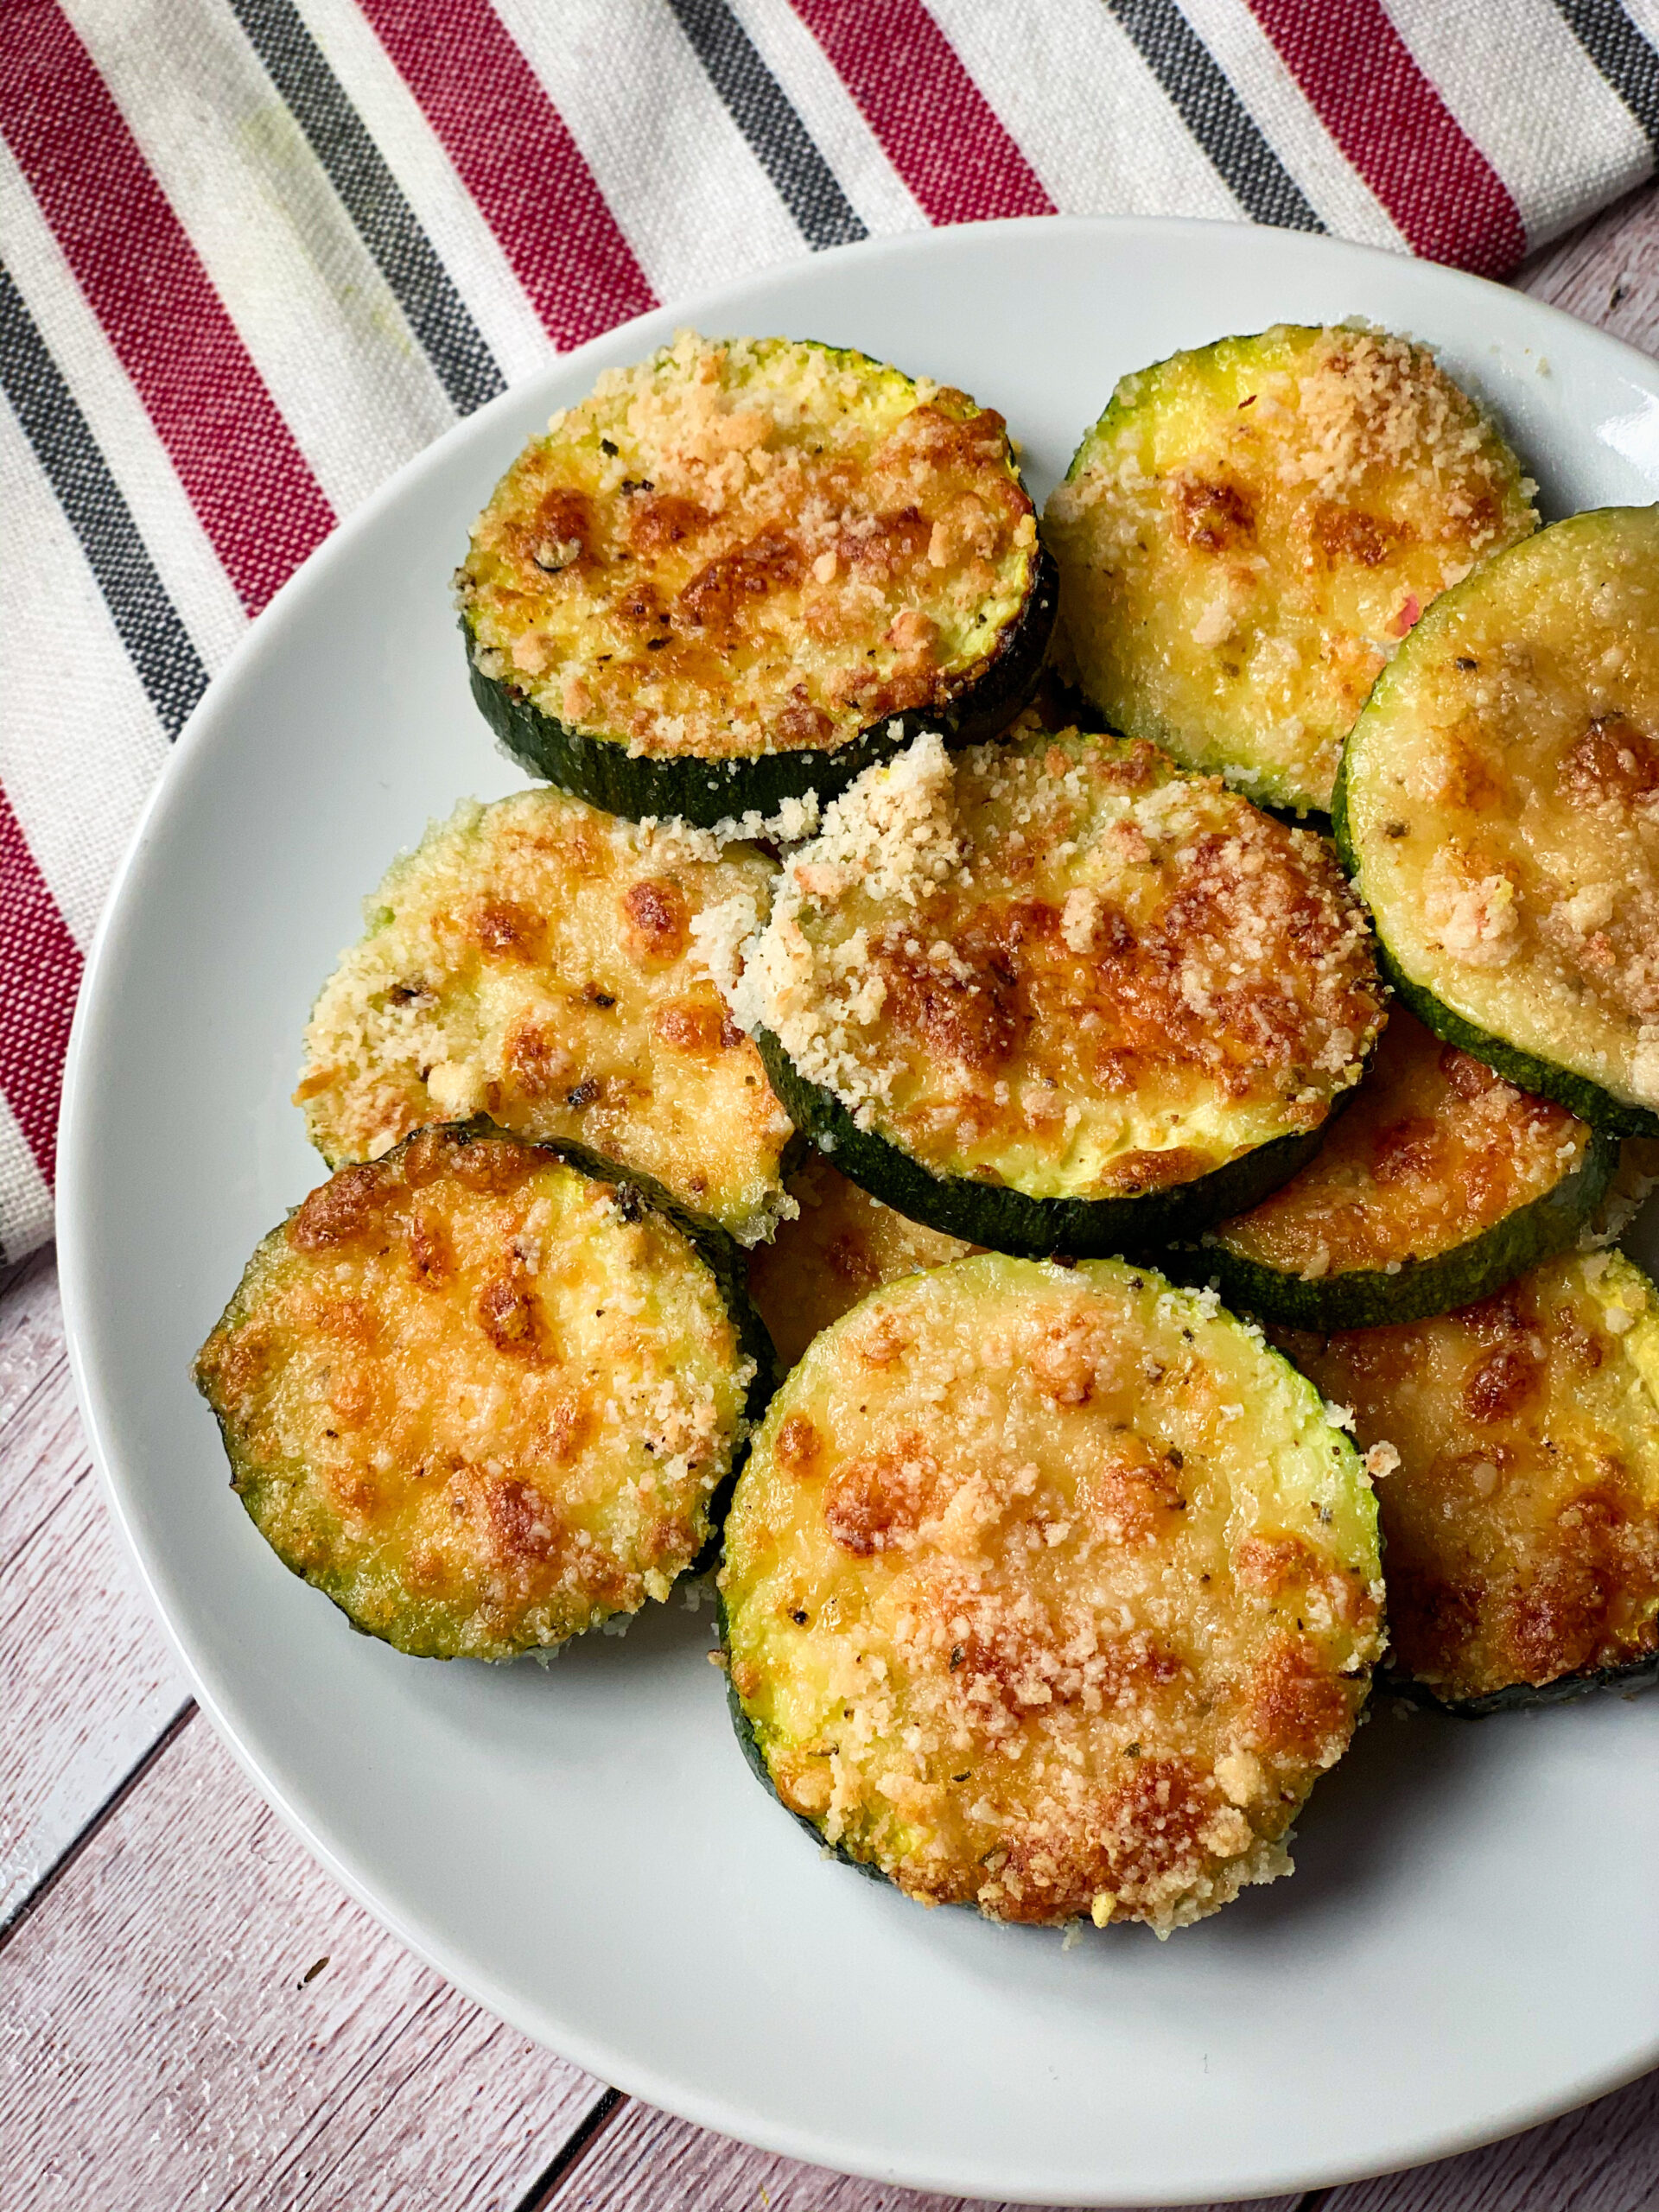 Picture of a plate with keto baked zucchini side dish with cheese and almond